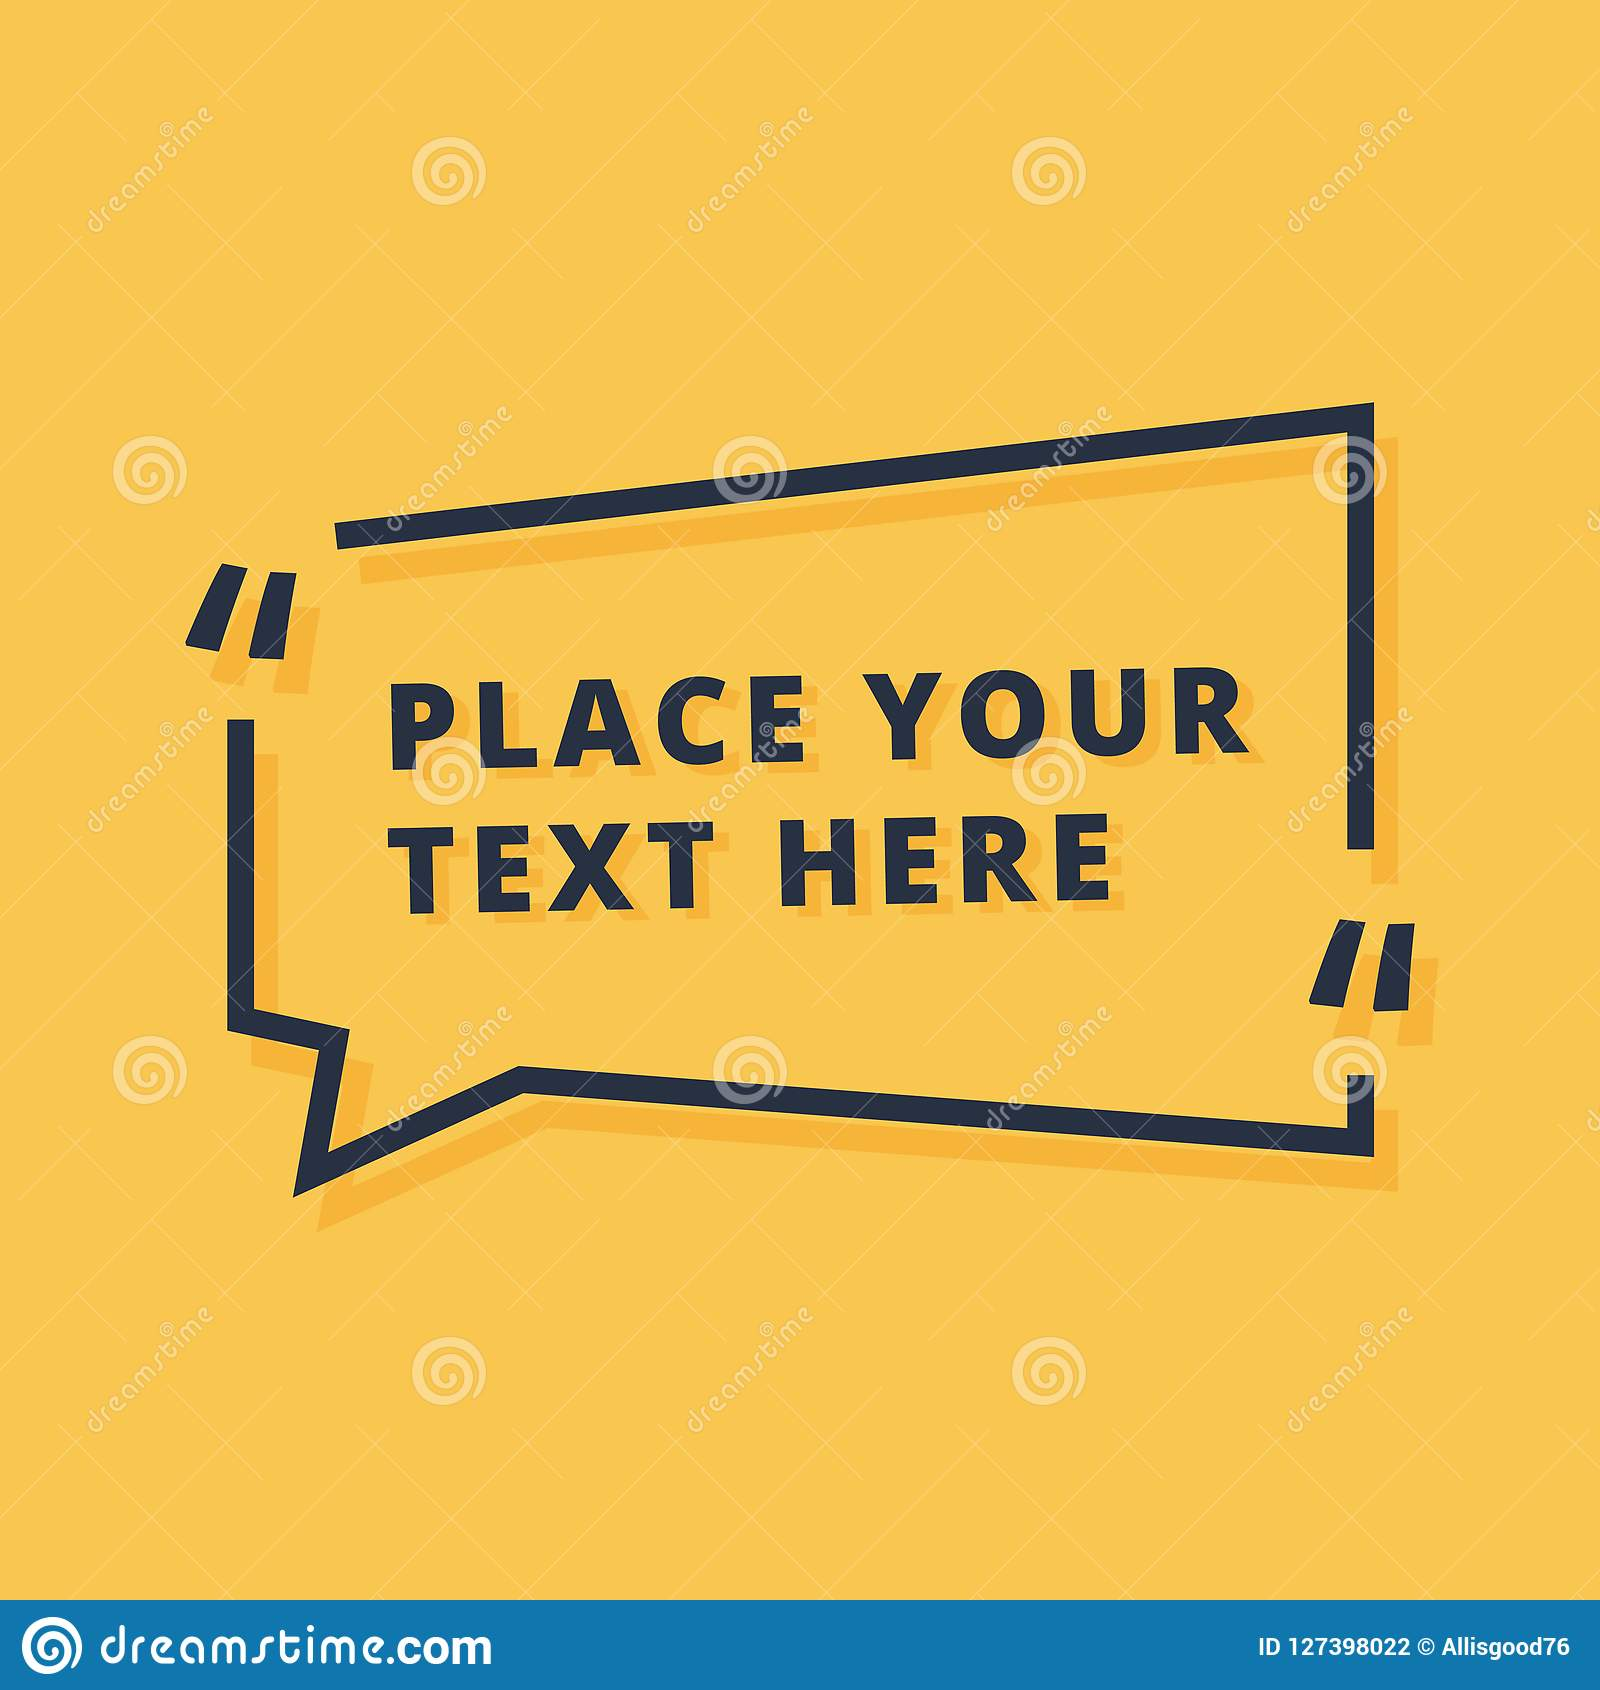 Text frame design vector illustration isolated on yellow background. Dialog icon with placeholder announcement